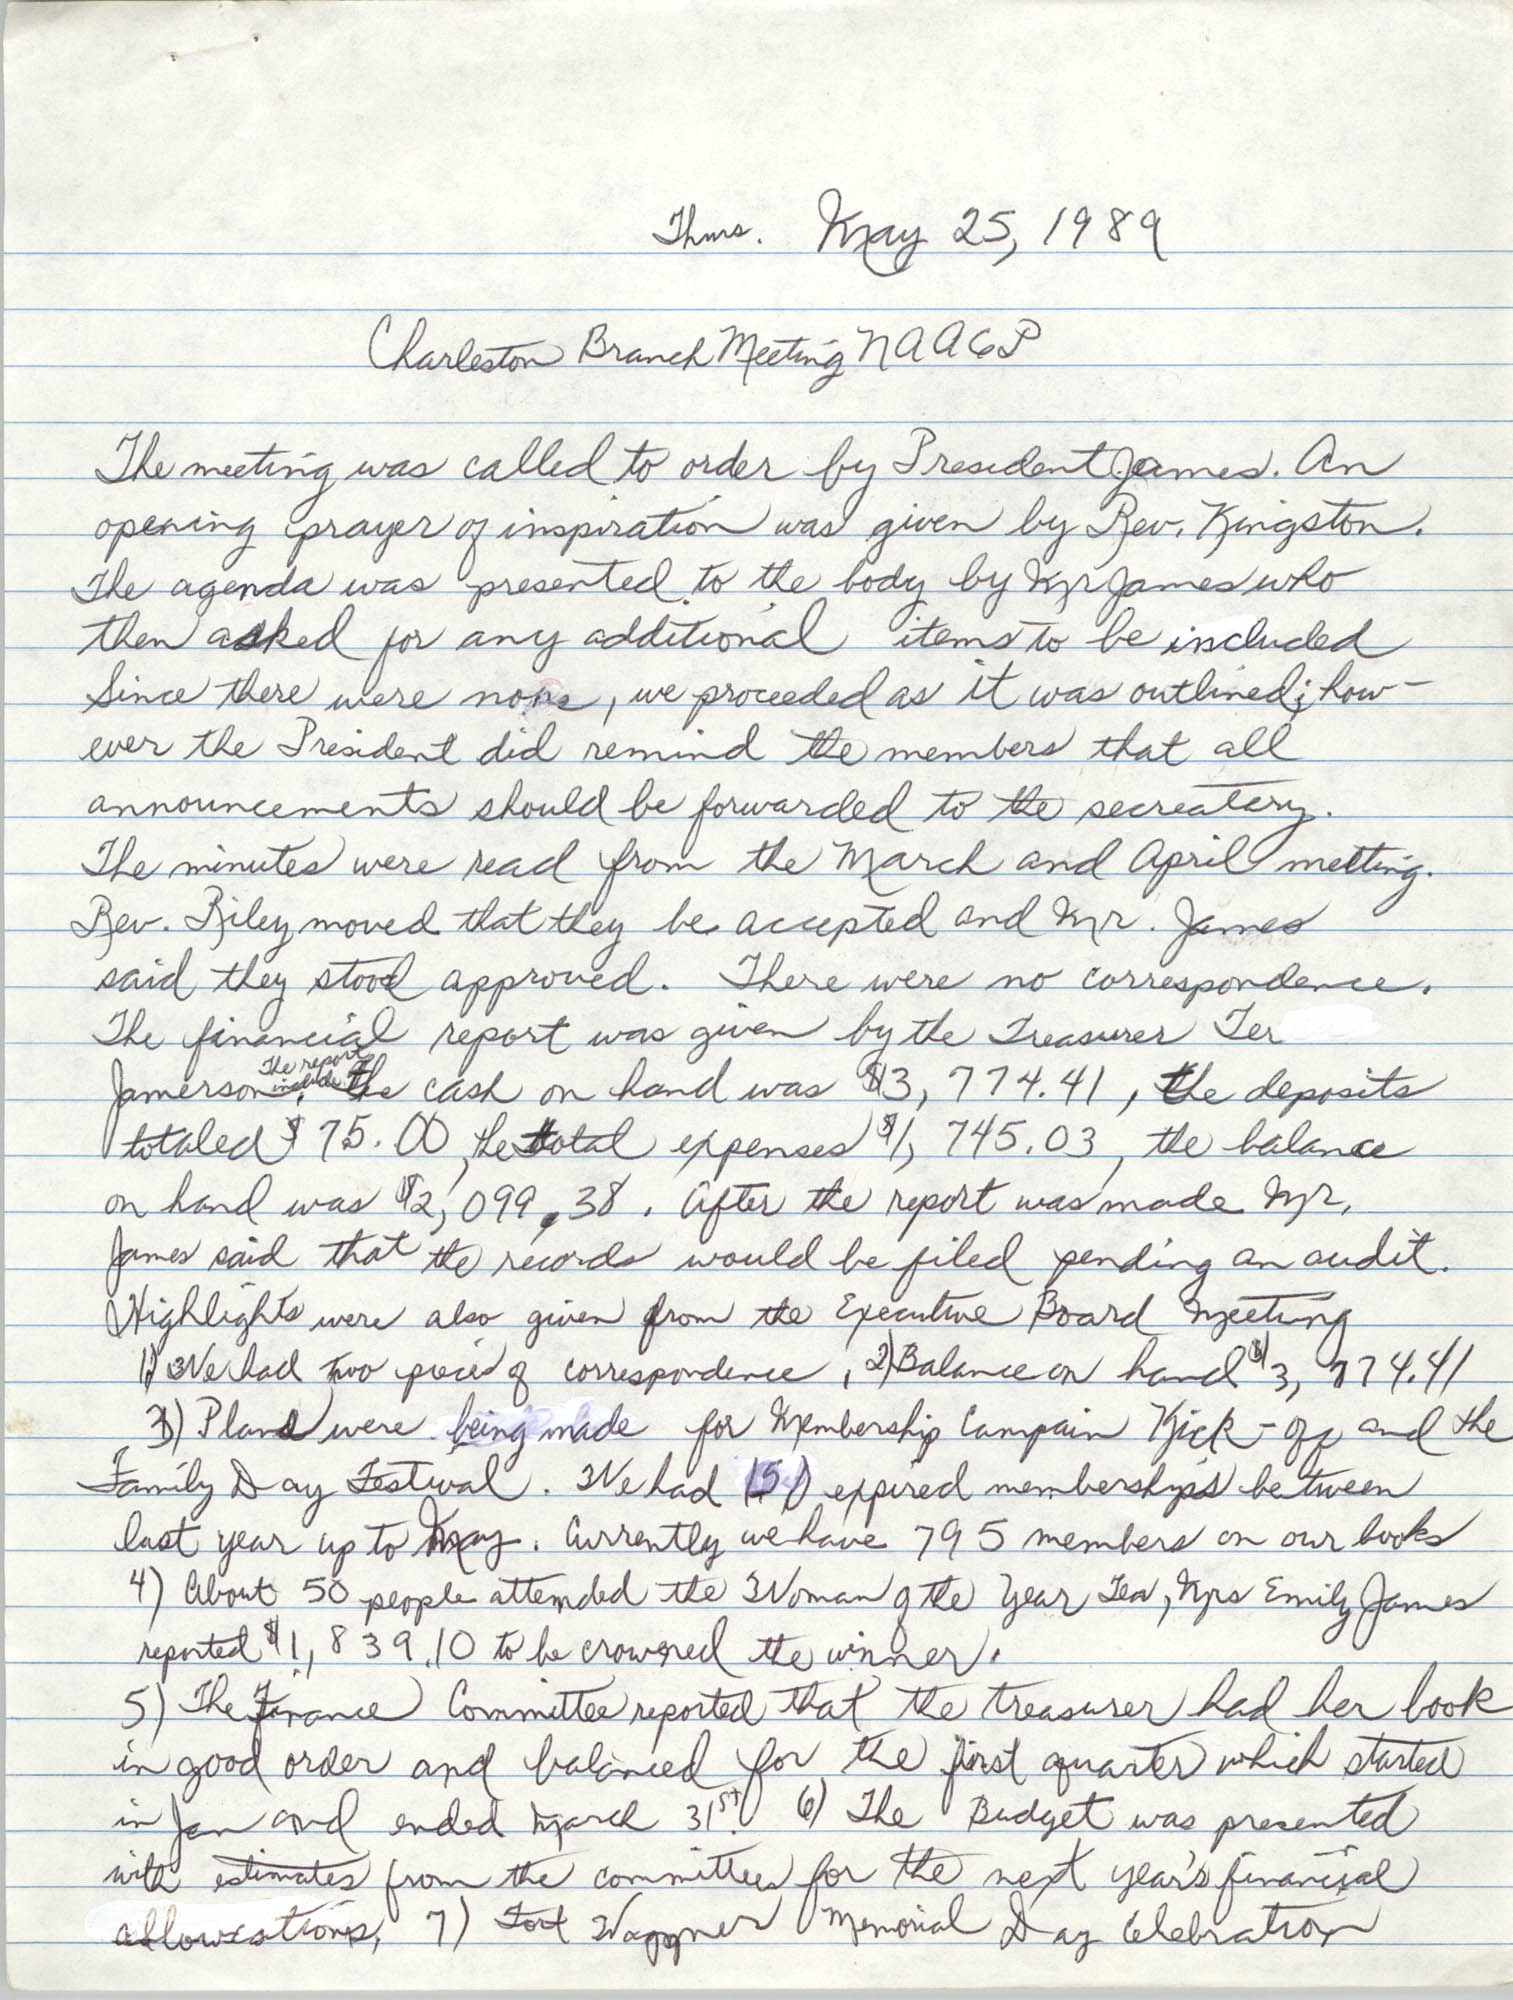 Minutes, Charleston Branch of the NAACP General Membership Meeting, May 25, 1989